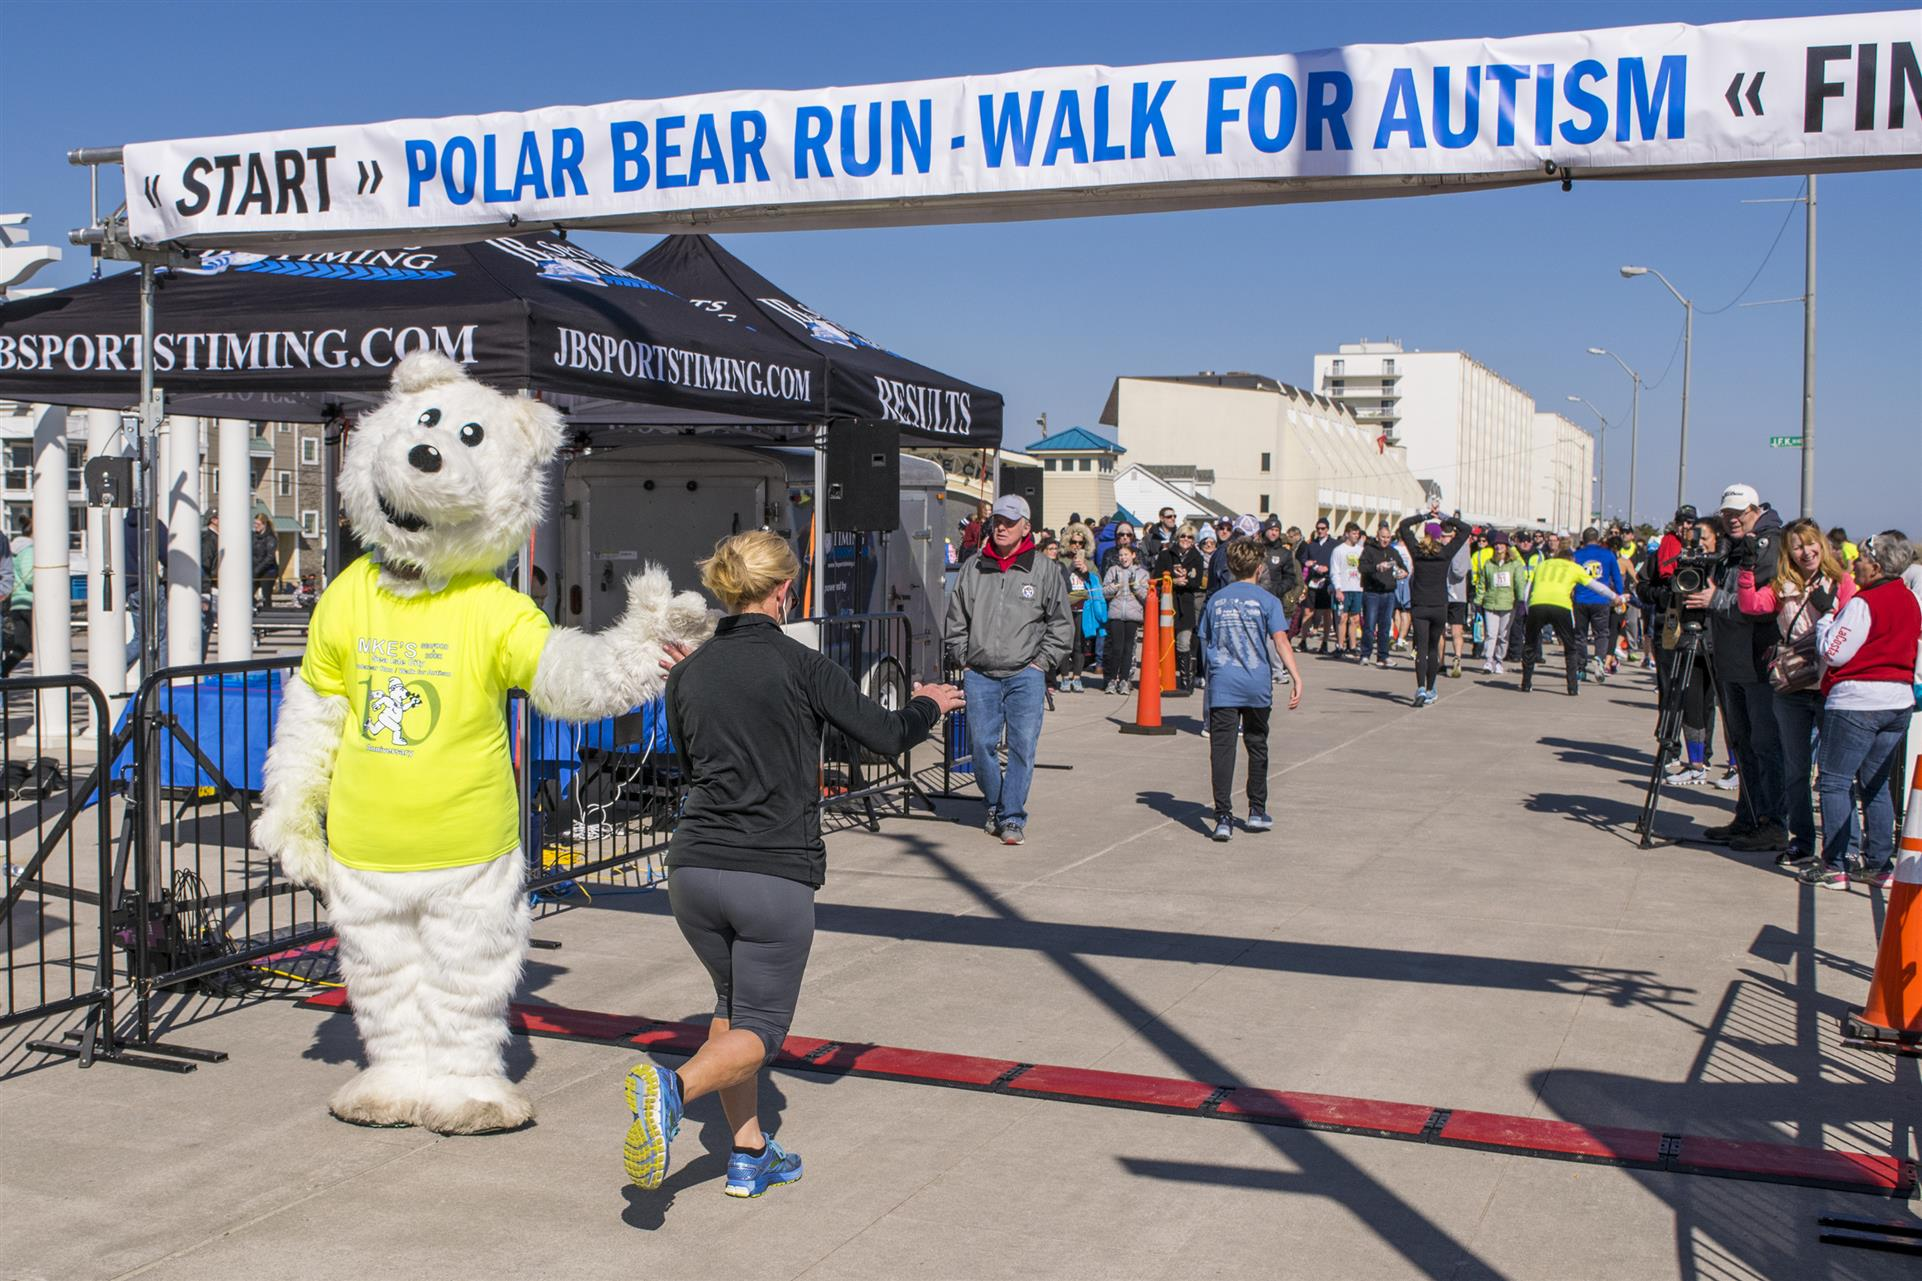 polar bear mascot high fiving a runner